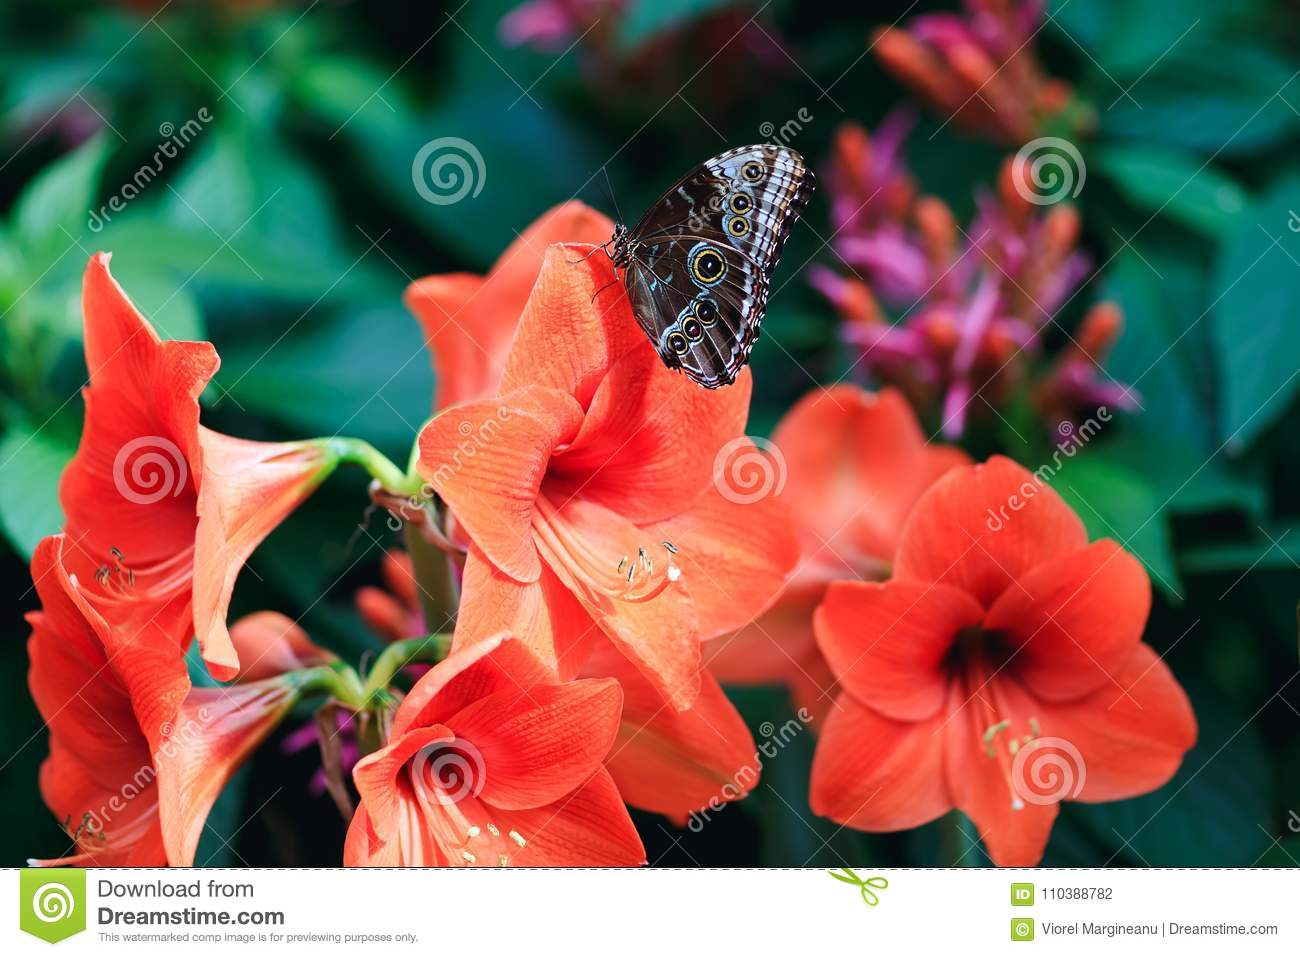 Amazing red lily with cute lime butterfly in spring garden.